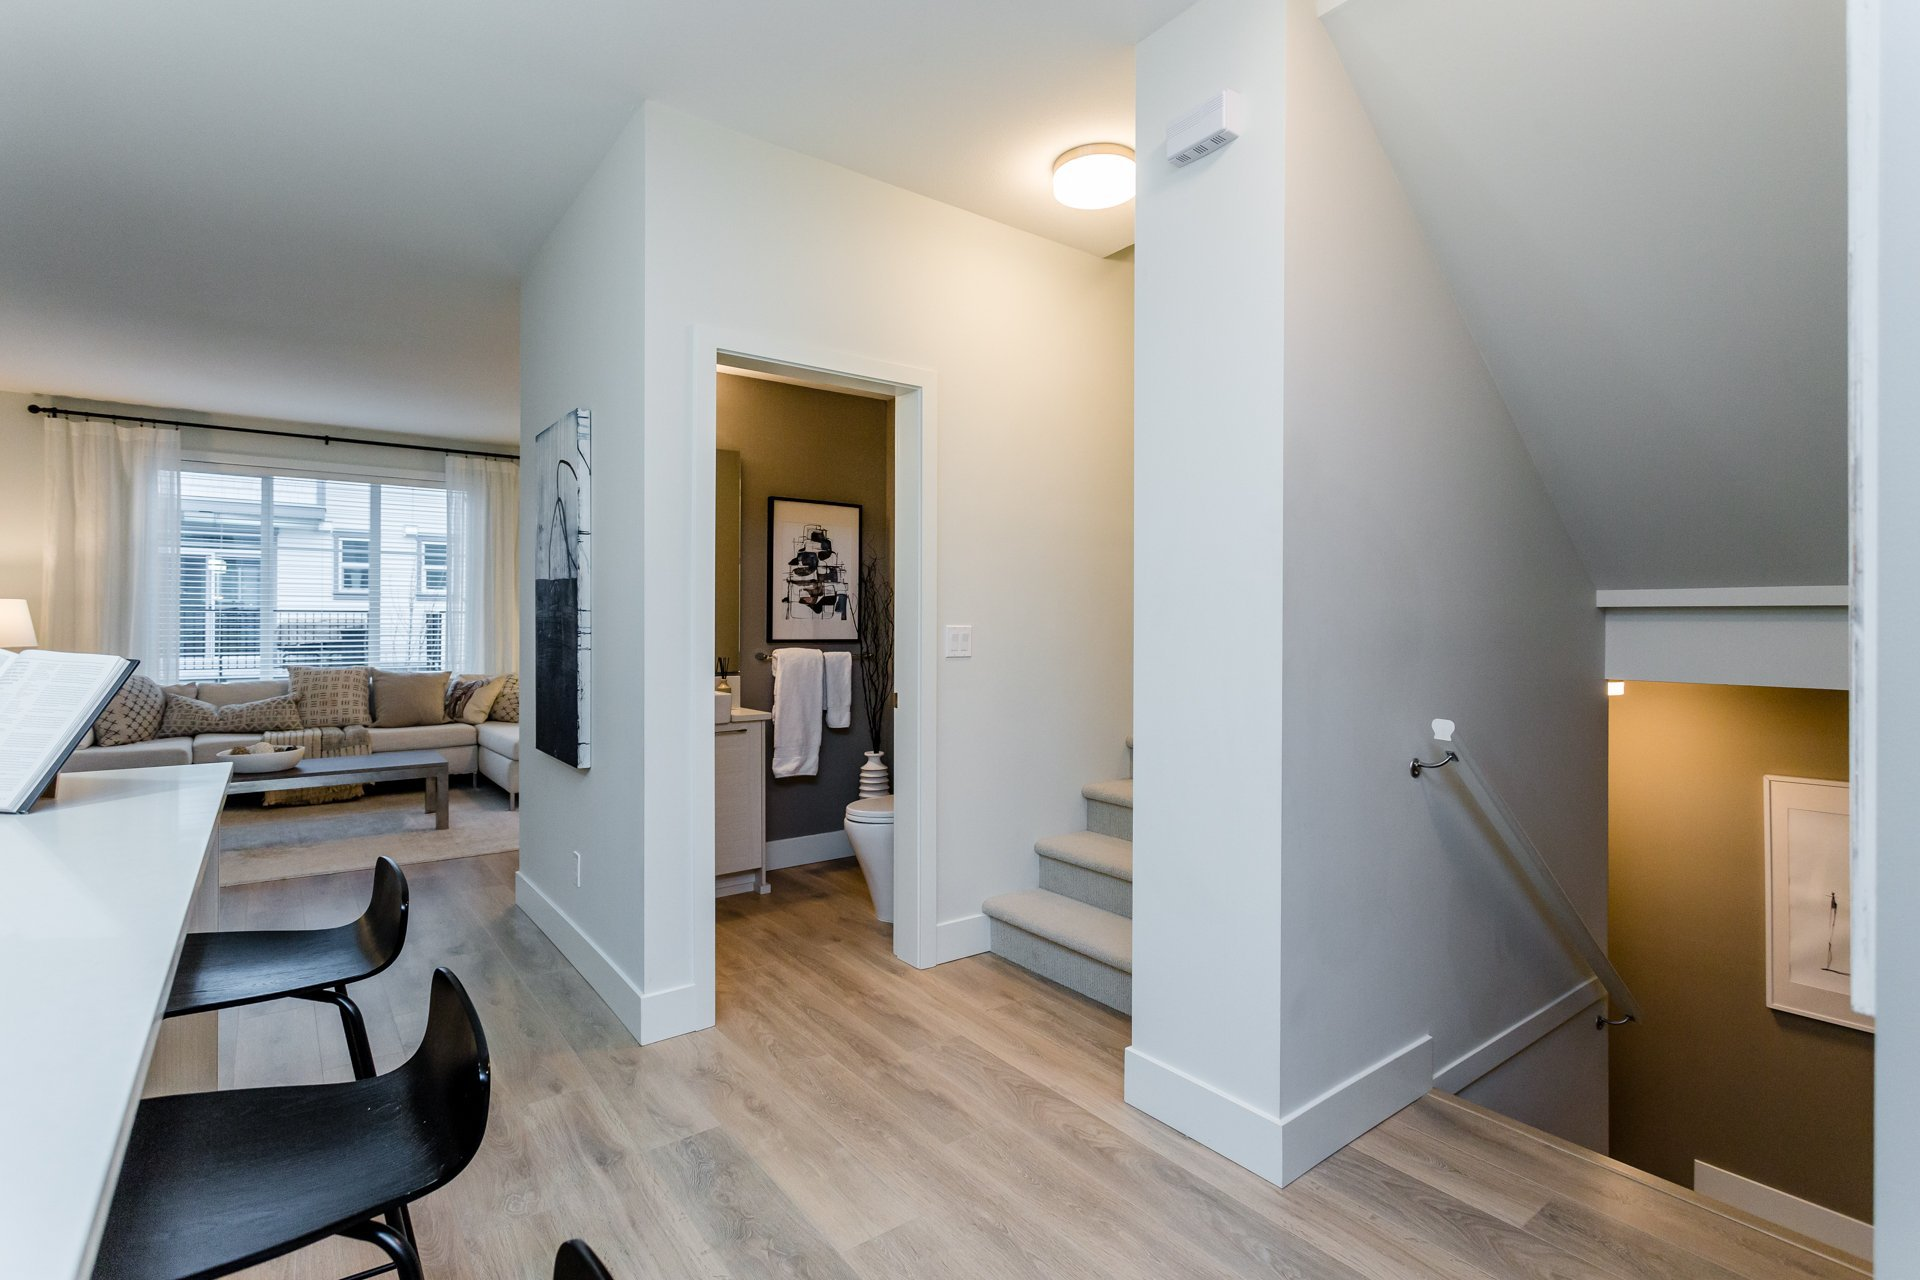 """Photo 5: Photos: 8 8217 204B Street in Langley: Willoughby Heights Townhouse for sale in """"EVERLY GREEN"""" : MLS®# R2236678"""